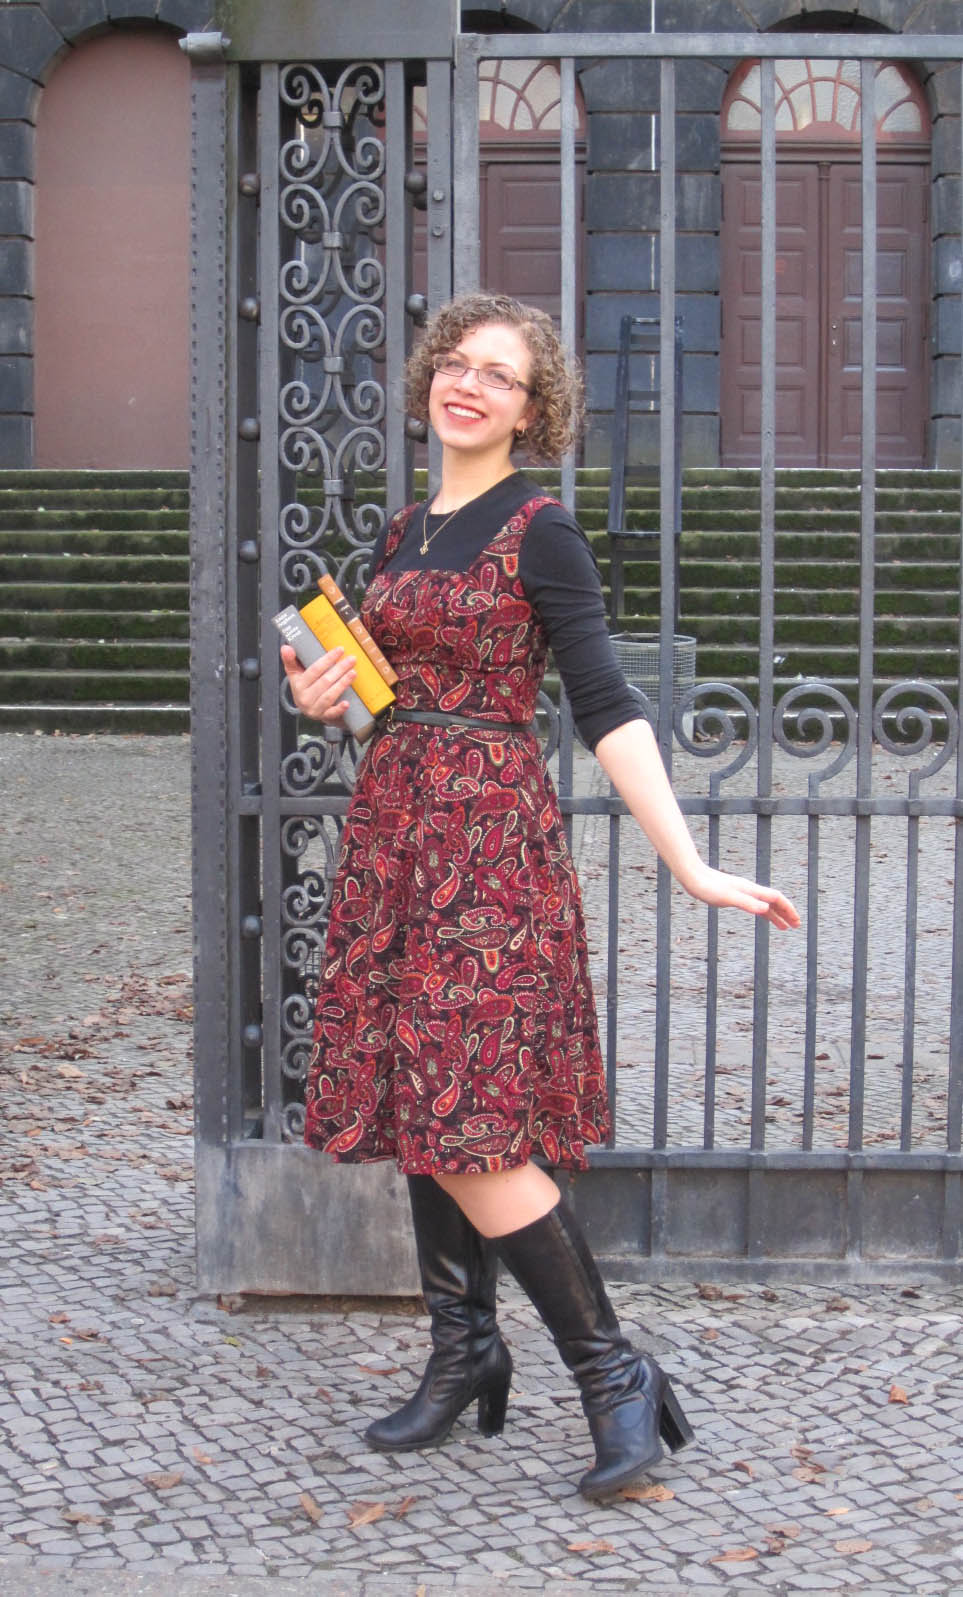 Me Made Midweek red paisley dress in a 1950's style, perfect for fall